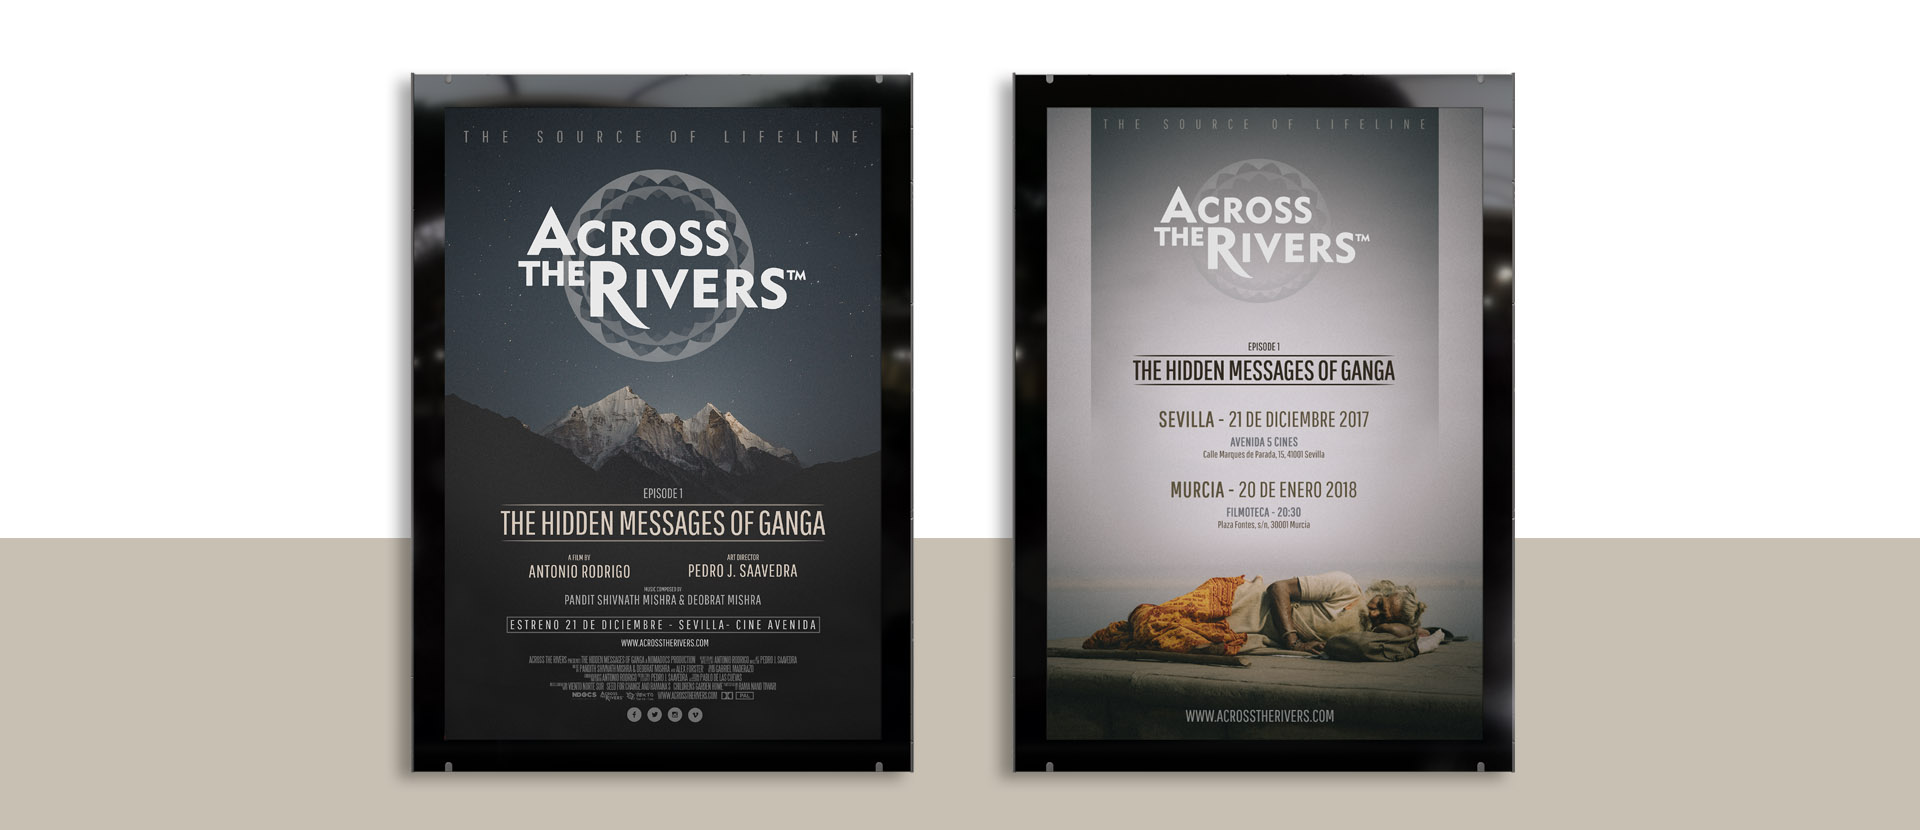 across_the_rivers_carteles